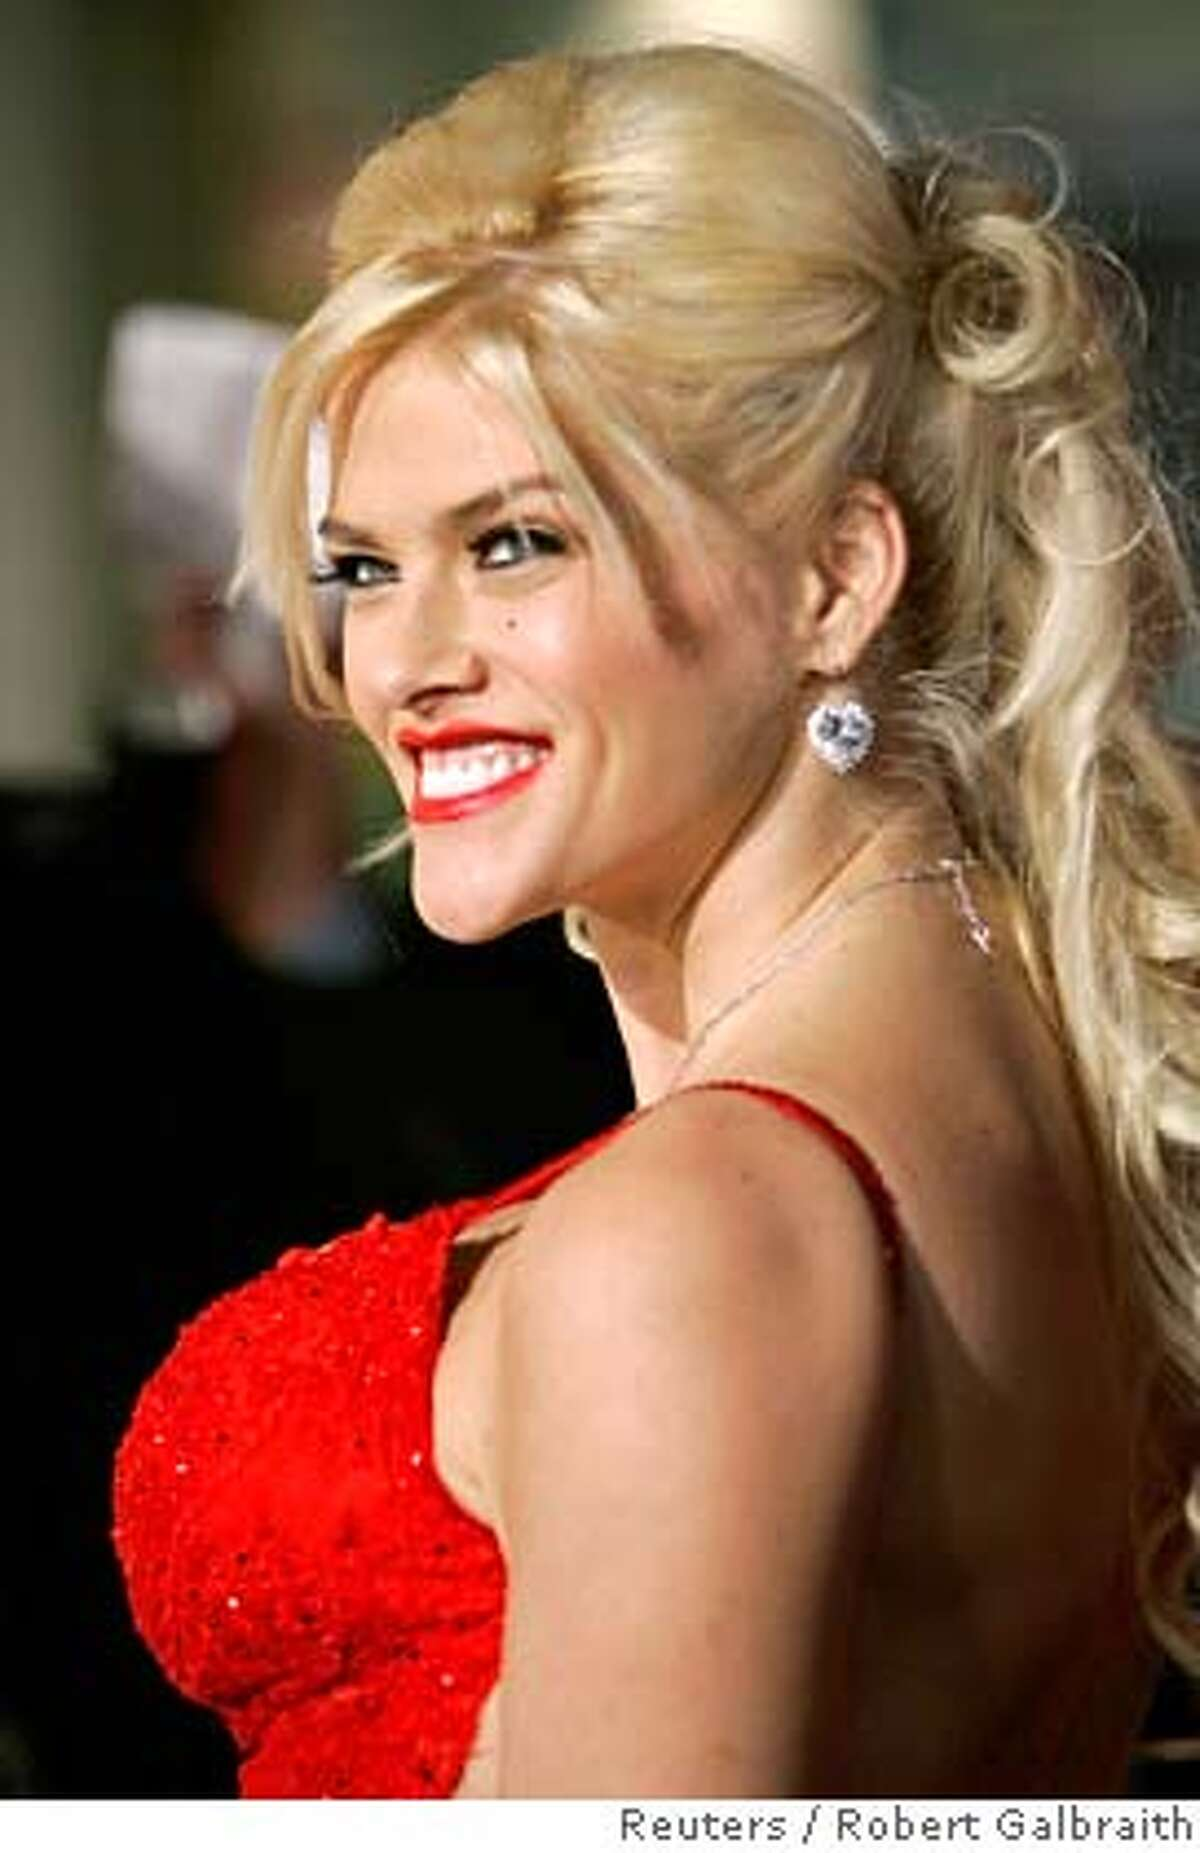 """Model Anna Nicole Smith poses as she arrives as a guest at the world premiere of the film """"Be Cool"""" in Hollywood, California in this February 14, 2005 file photo. A drug overdose caused last month's sudden death of former Playboy Playmate Smith, CNN said, citing officials on March 26, 2007. REUTERS/Robert Galbraith/Files (UNITED STATES) 0"""